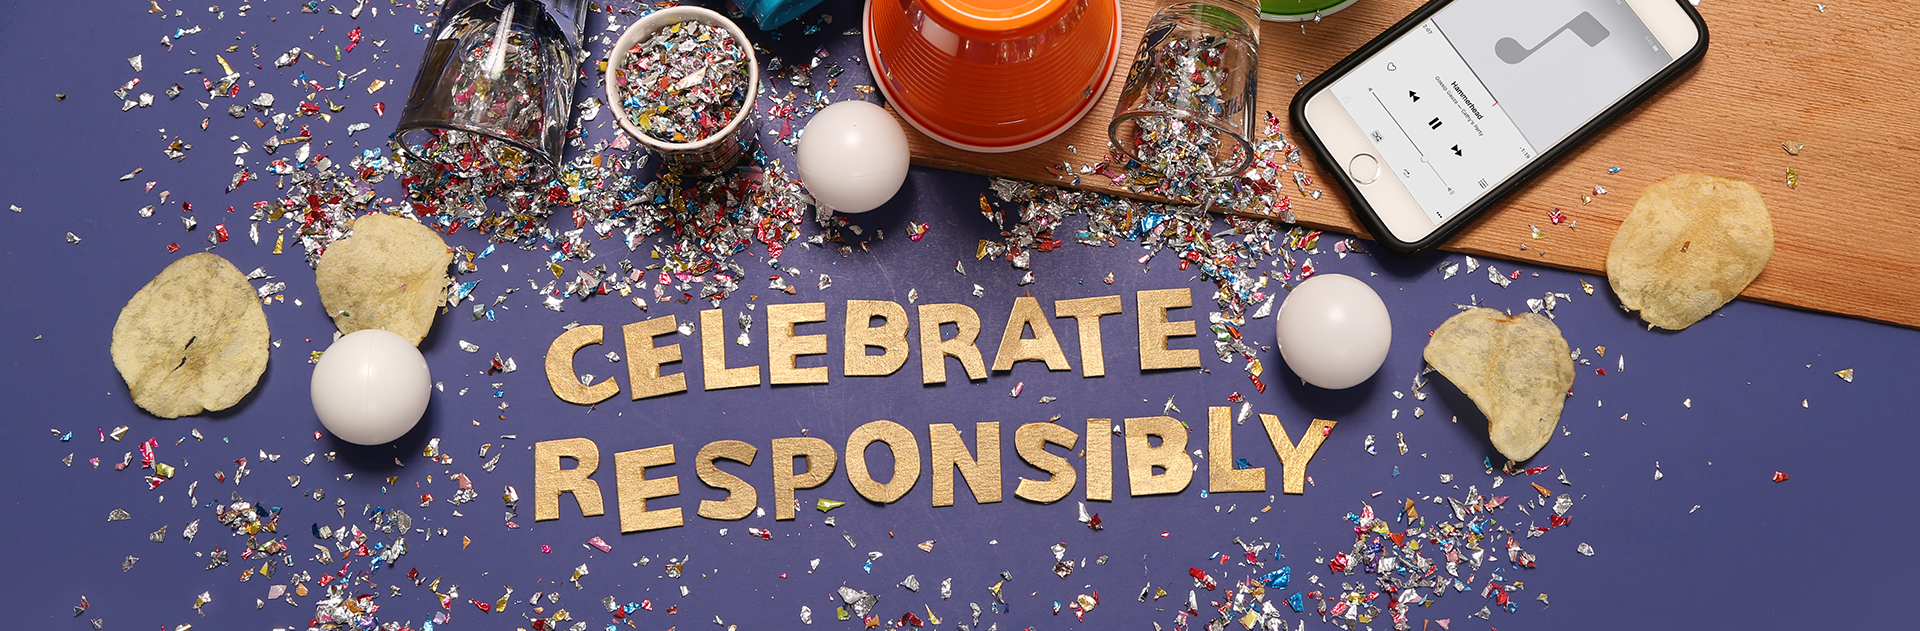 CelebrateResponsibly_HouseParty